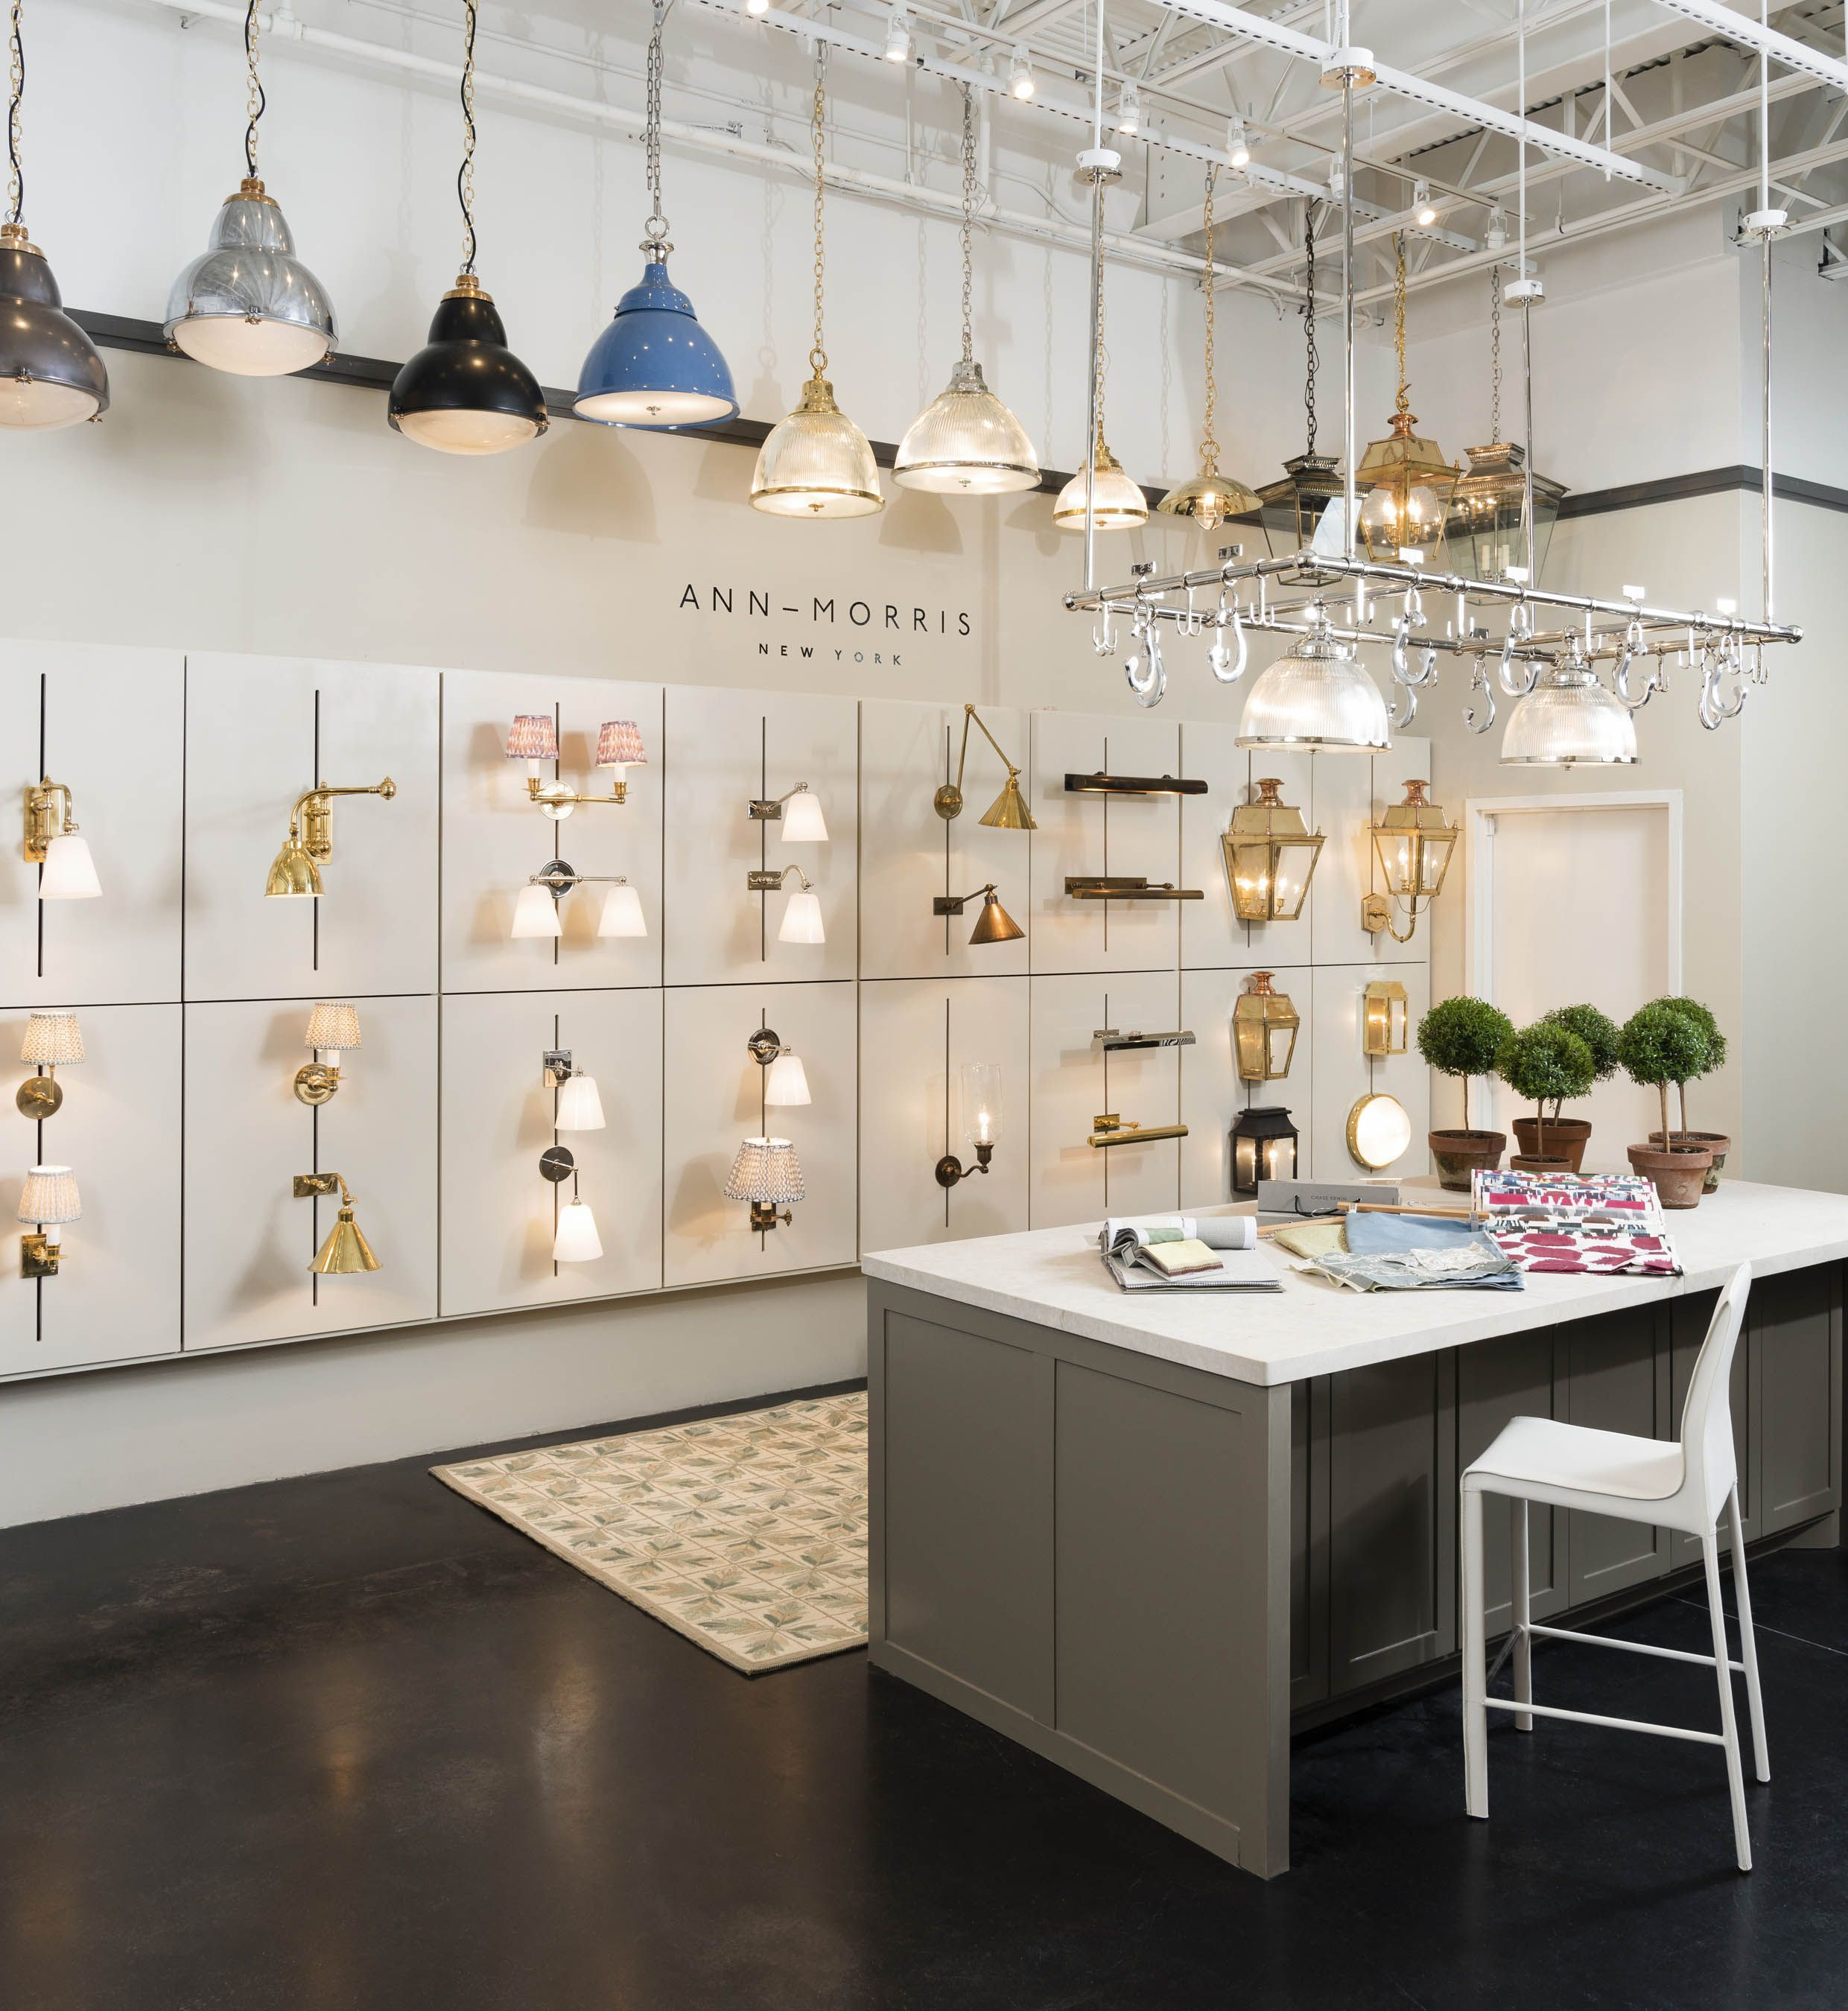 the anna morris new york display in the